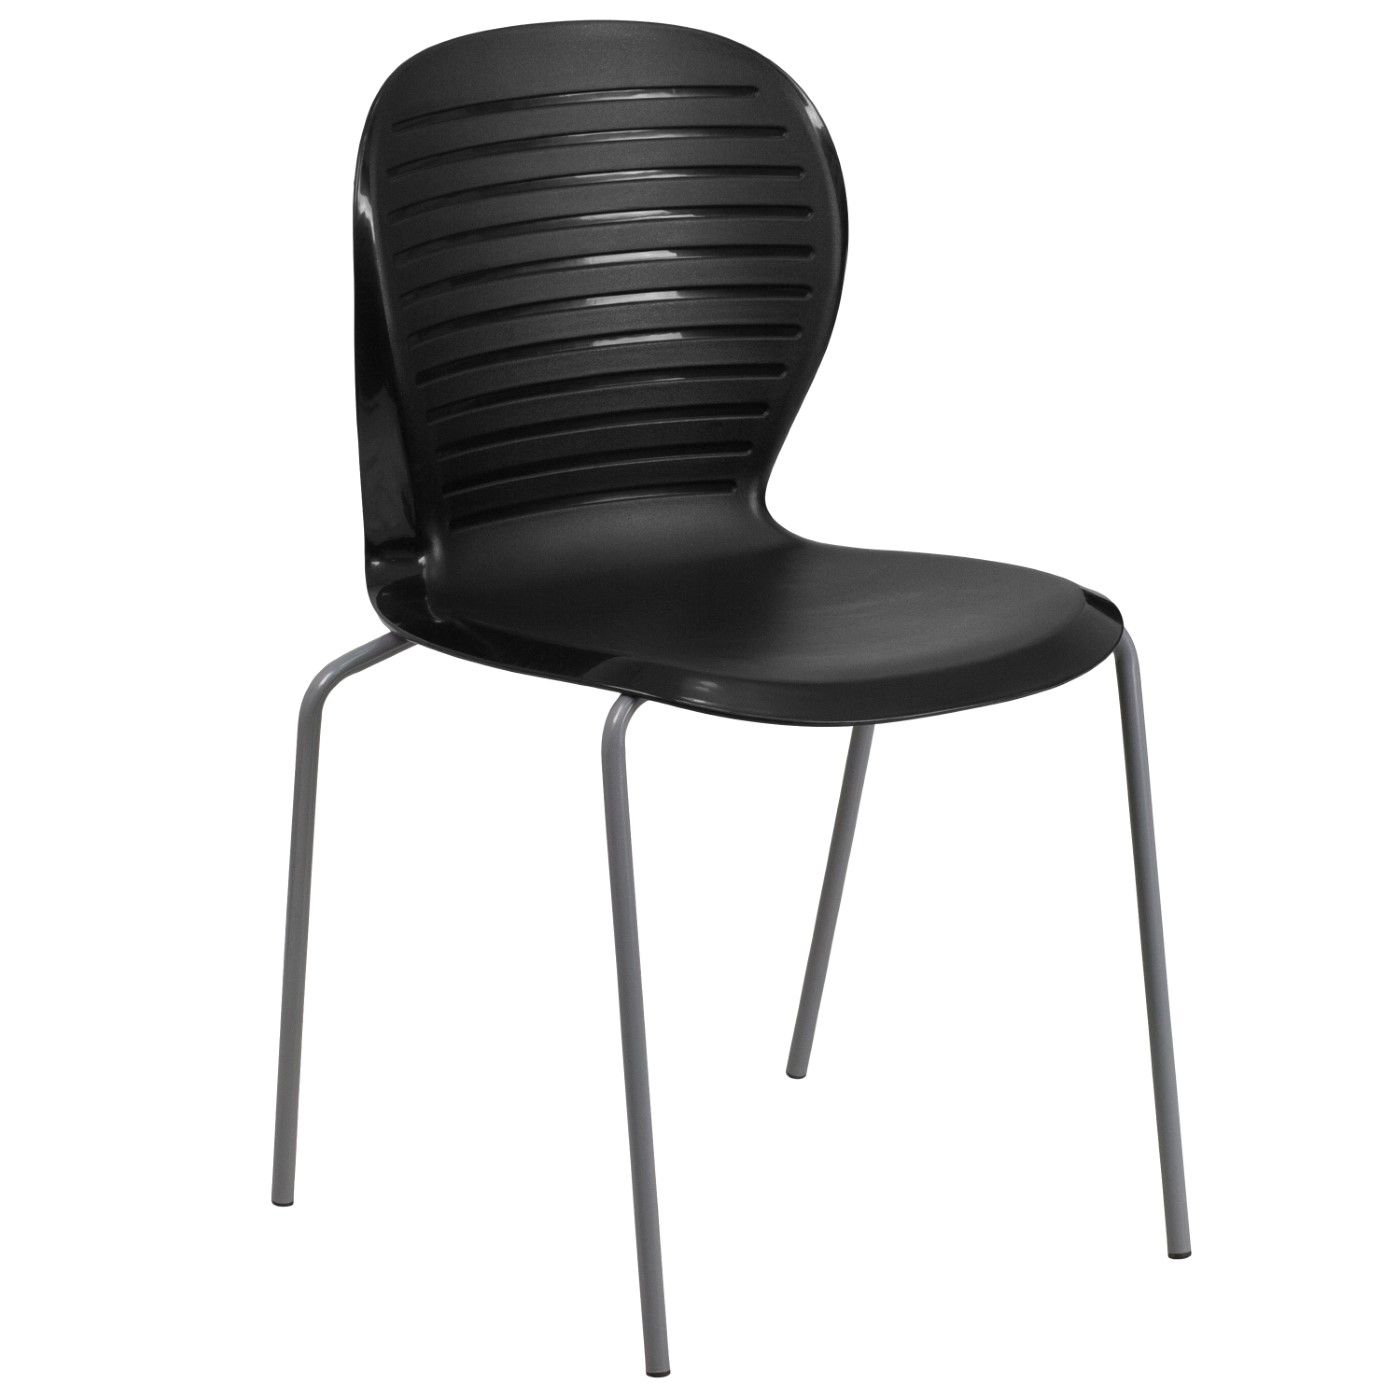 TOUGH ENOUGH Series 551 lb. Capacity Black Stack Chair